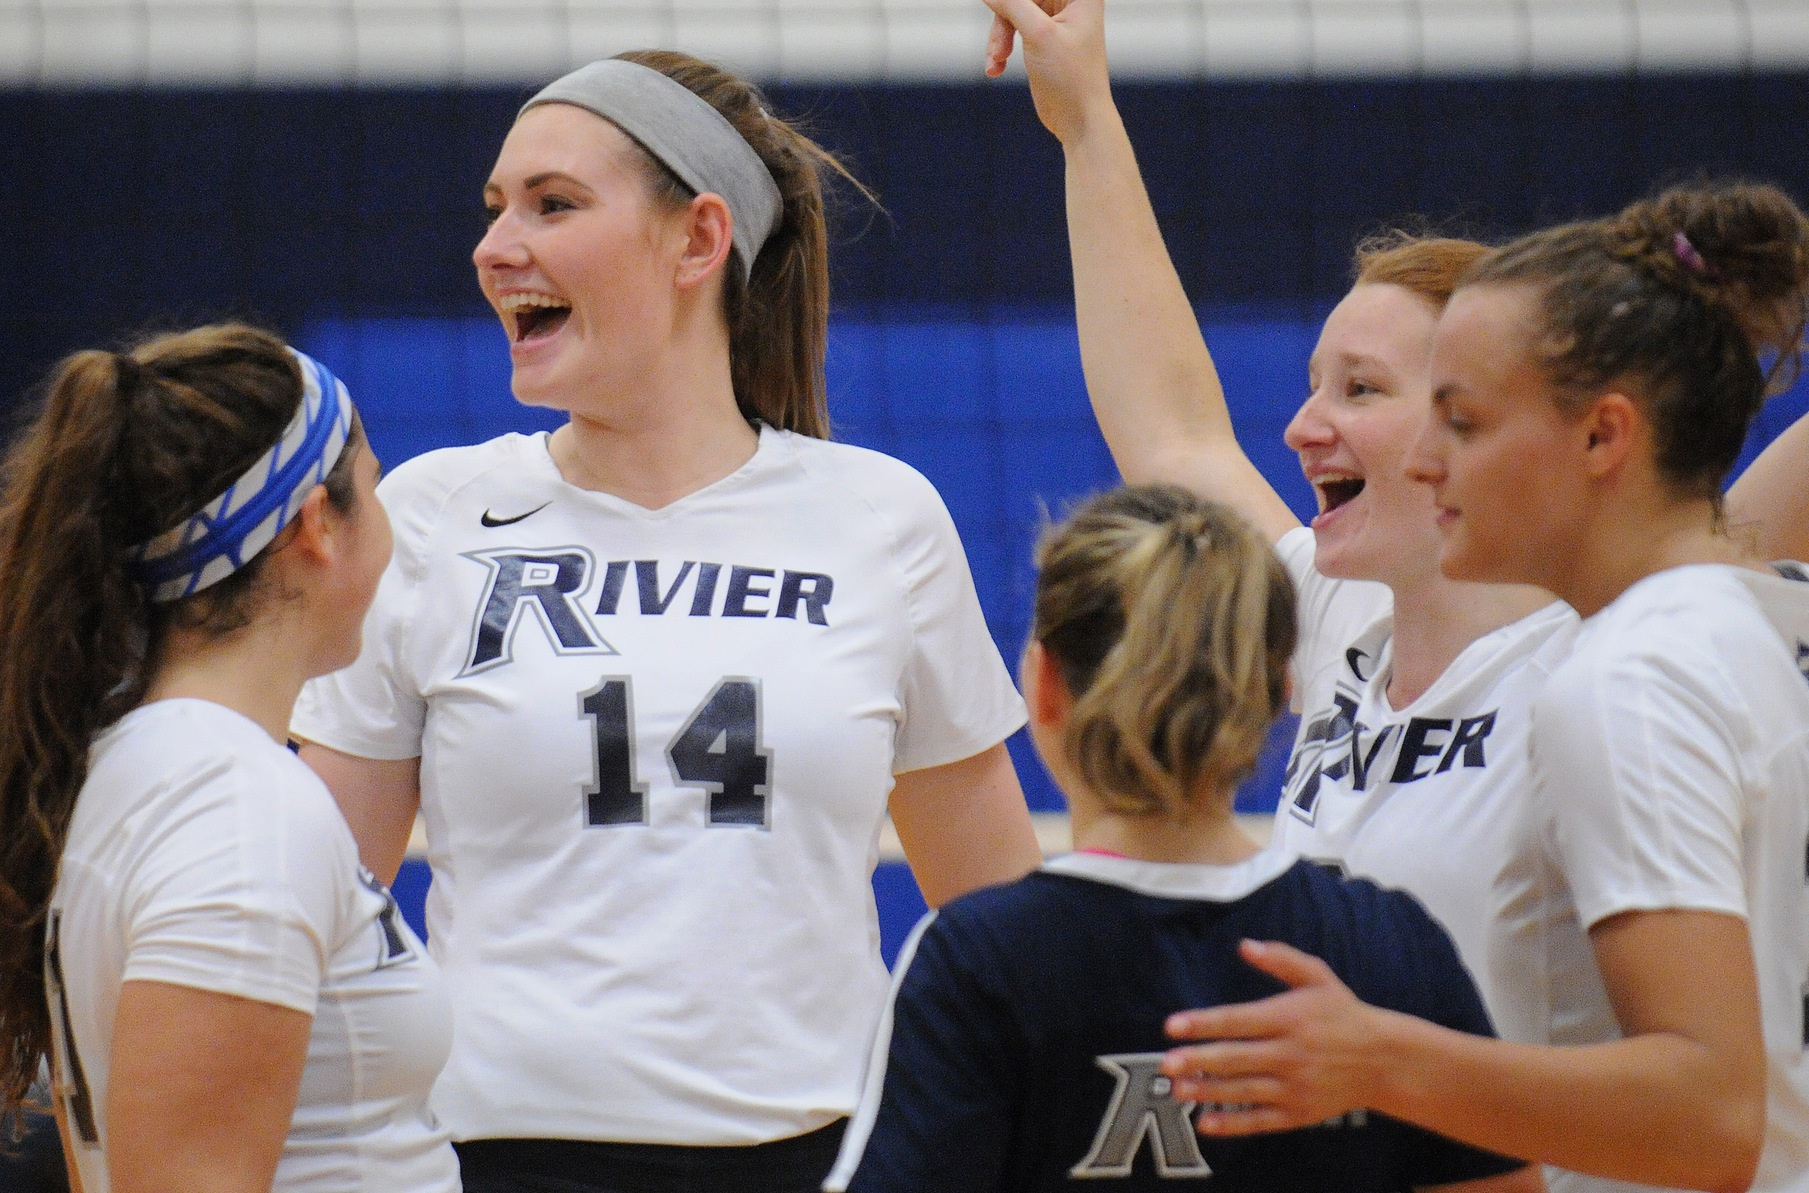 Women's Volleyball: Collins powers Raiders to 3-1 win over Keene State